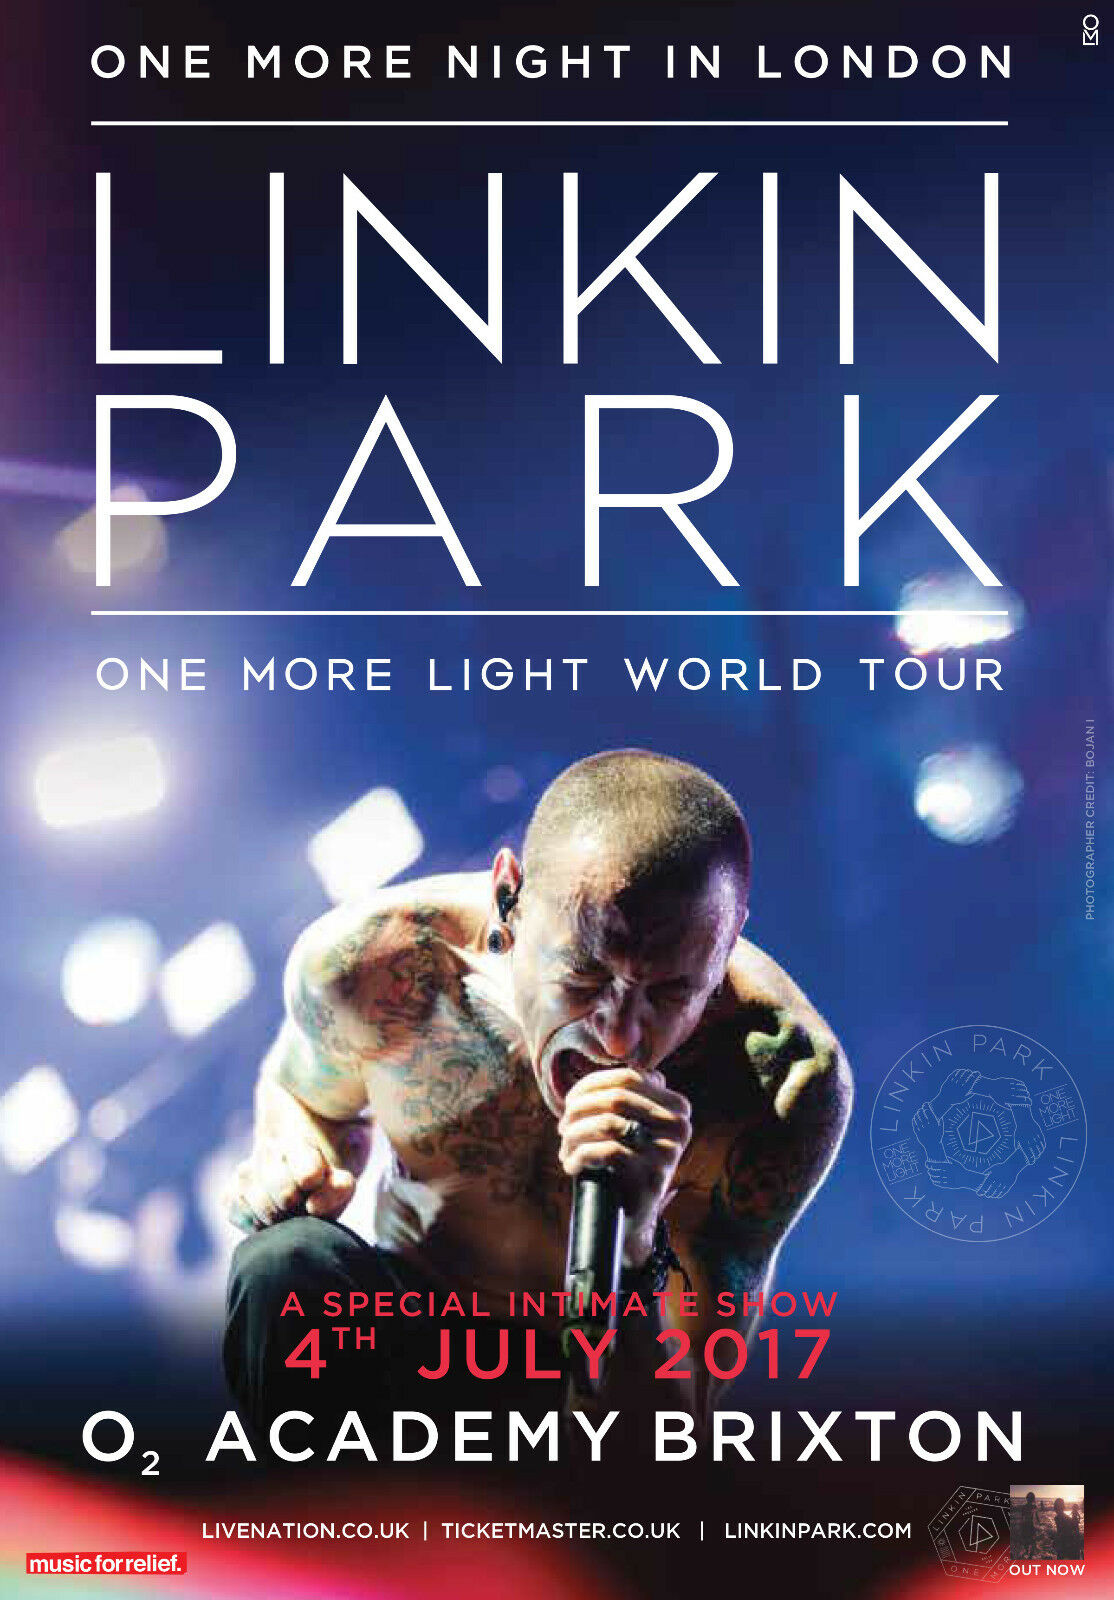 LINKIN PARK ONE MORE NIGHT IN LONDON 2017 UK CONCERT TOUR POSTER - Nu Metal - $11.99